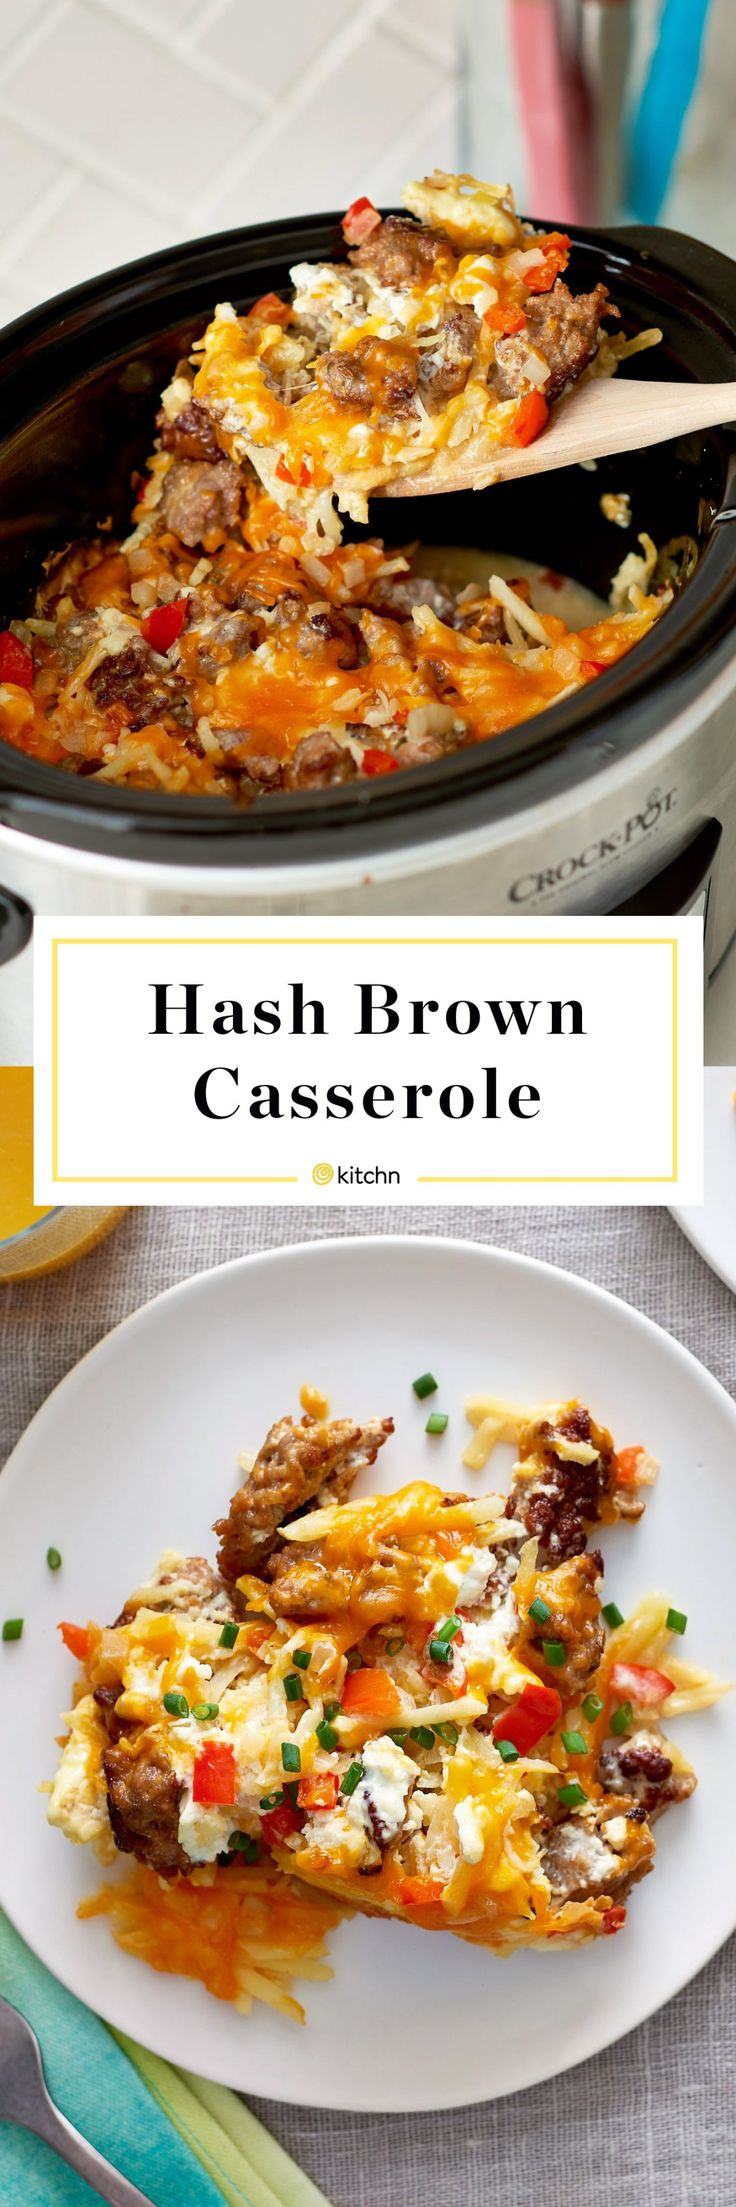 Slow Cooker or Crockpot Hash Brown Casserole. This make ahead overnight breakfast casserole for a crowd cooks in your crock pot! Need ideas for brunches or breakfasts for parties? You'll need frozen shredded hash brown potatoes, eggs, cream cheese, pork sausage, sour cream, onion, bell pepper, and cheddar cheese.